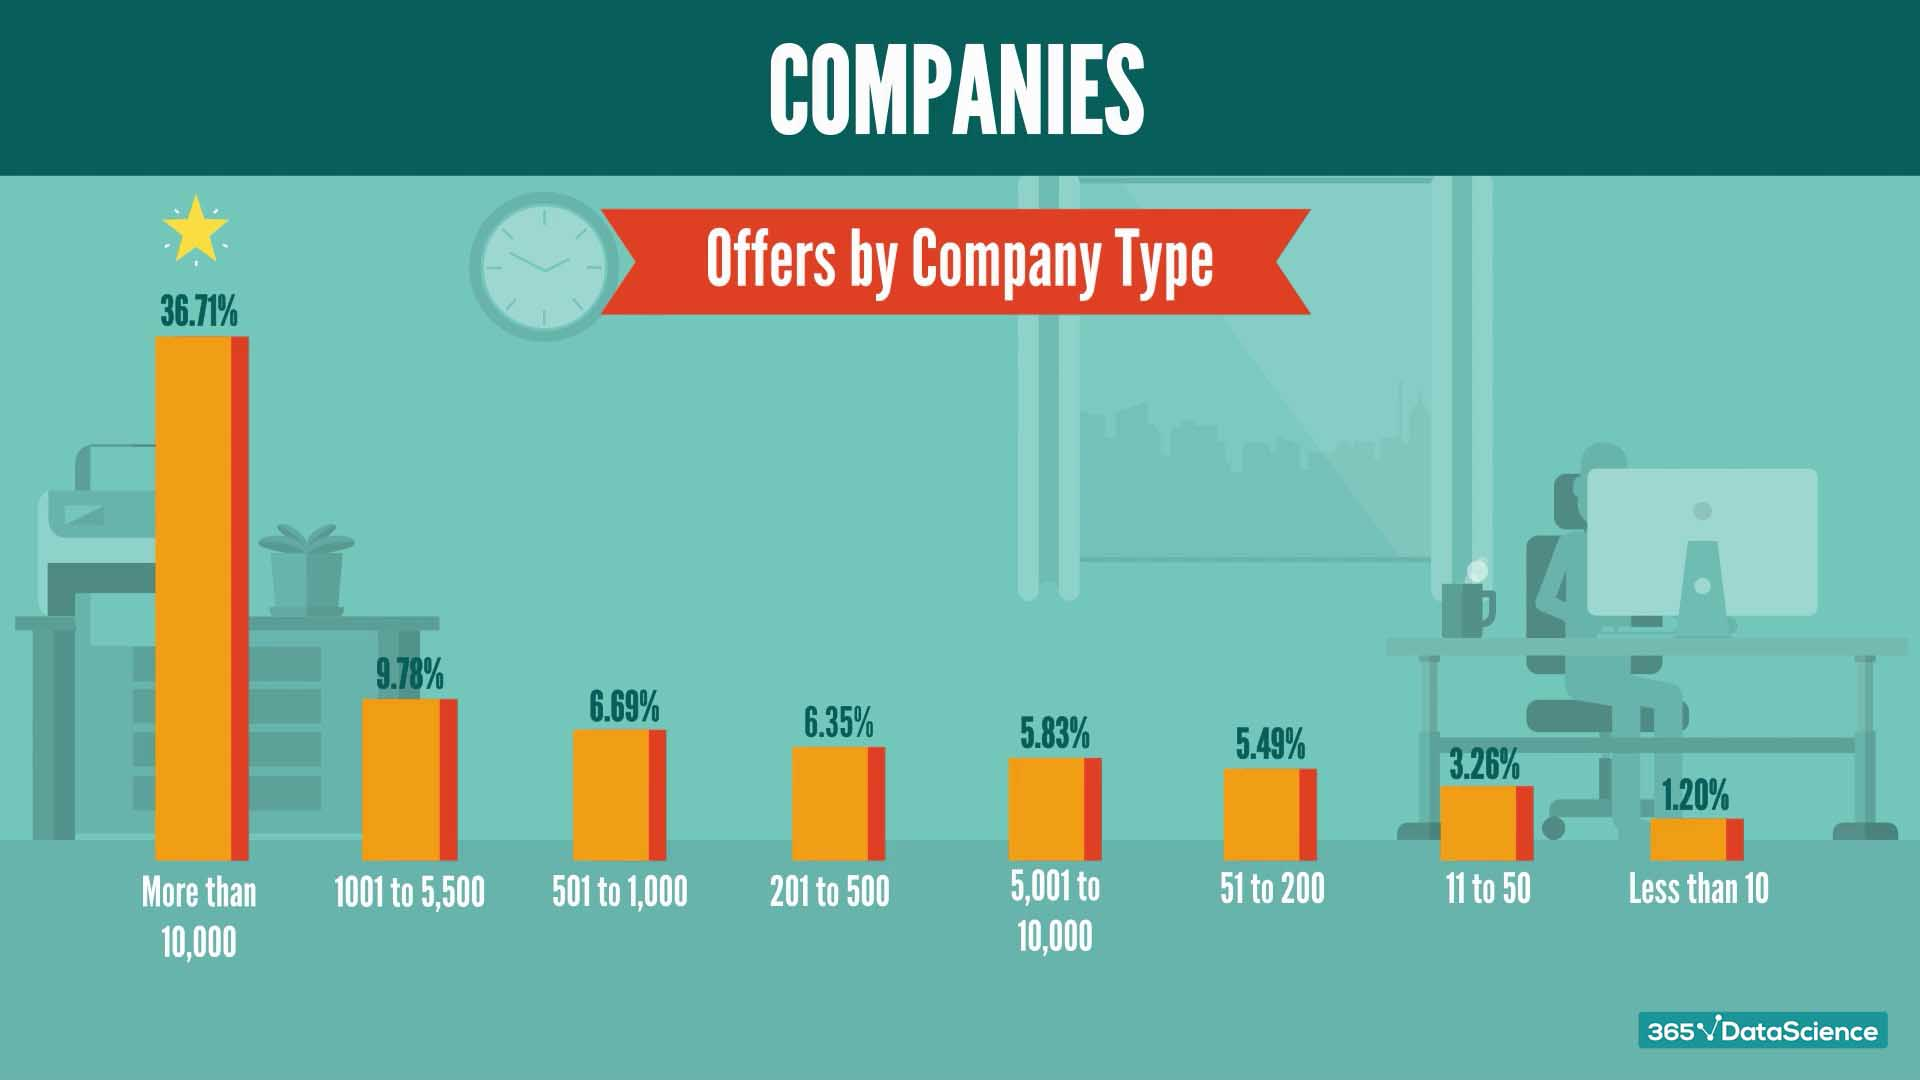 Company types with the highest number of Python job postings